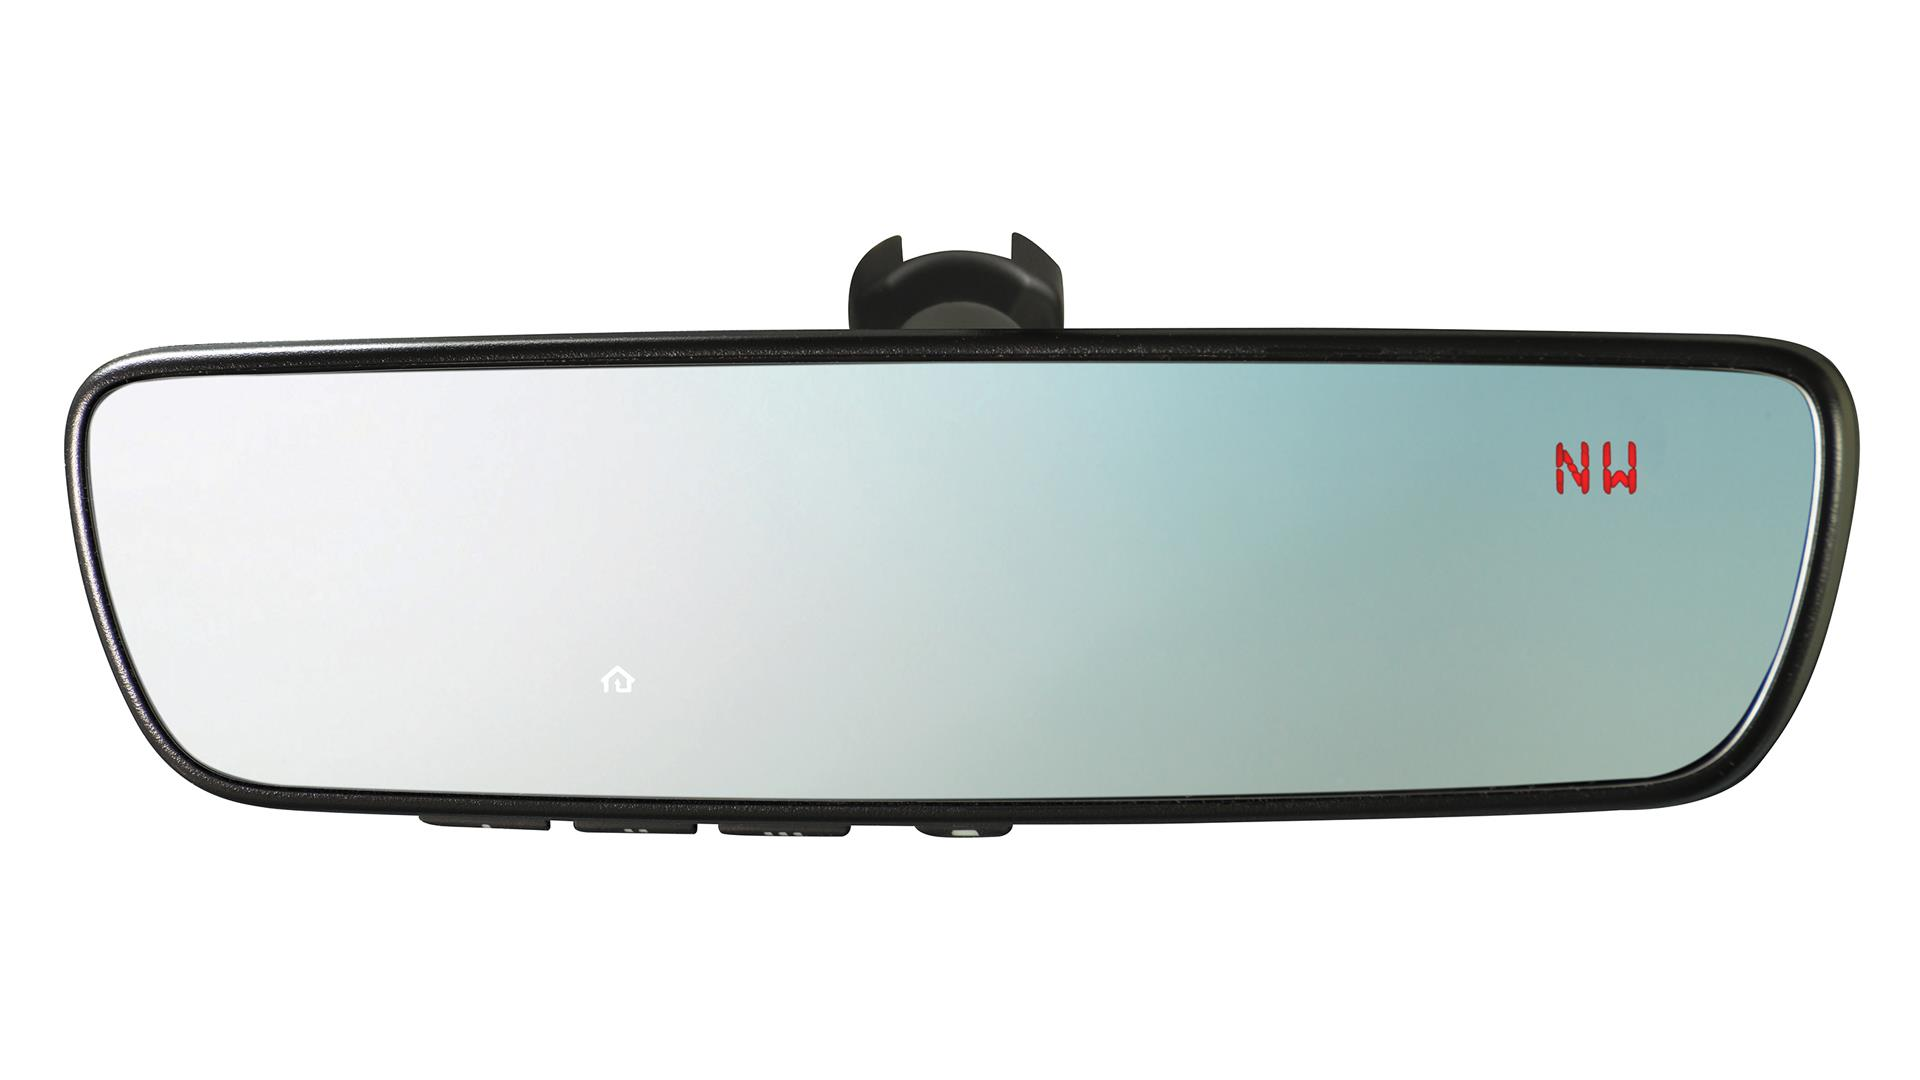 2017 Subaru STI Auto Dimming Mirror with Compass and HomeLink ®. Garage, Featuring - H501SVA100 ...